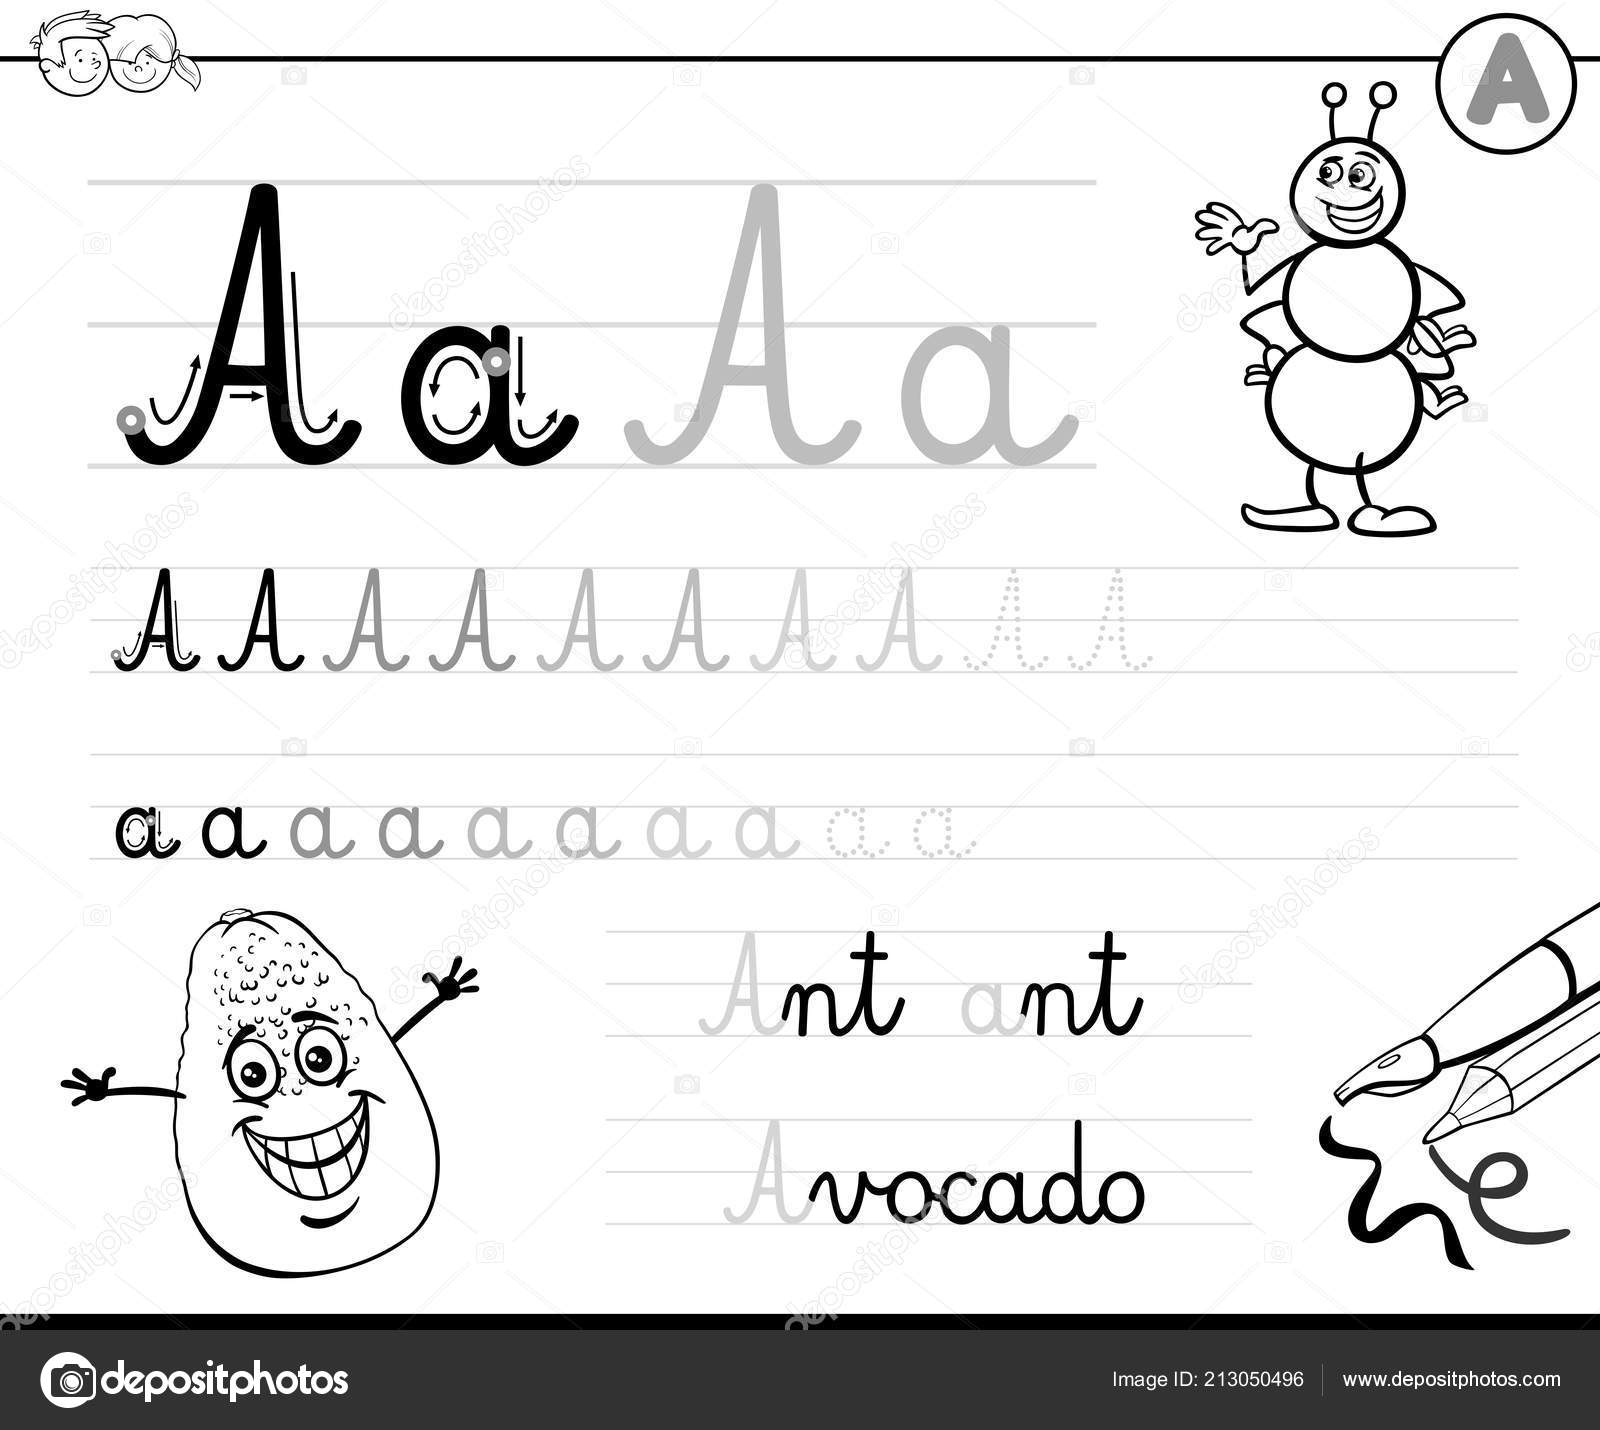 Black White Cartoon Illustration Writing Skills Practice Letter